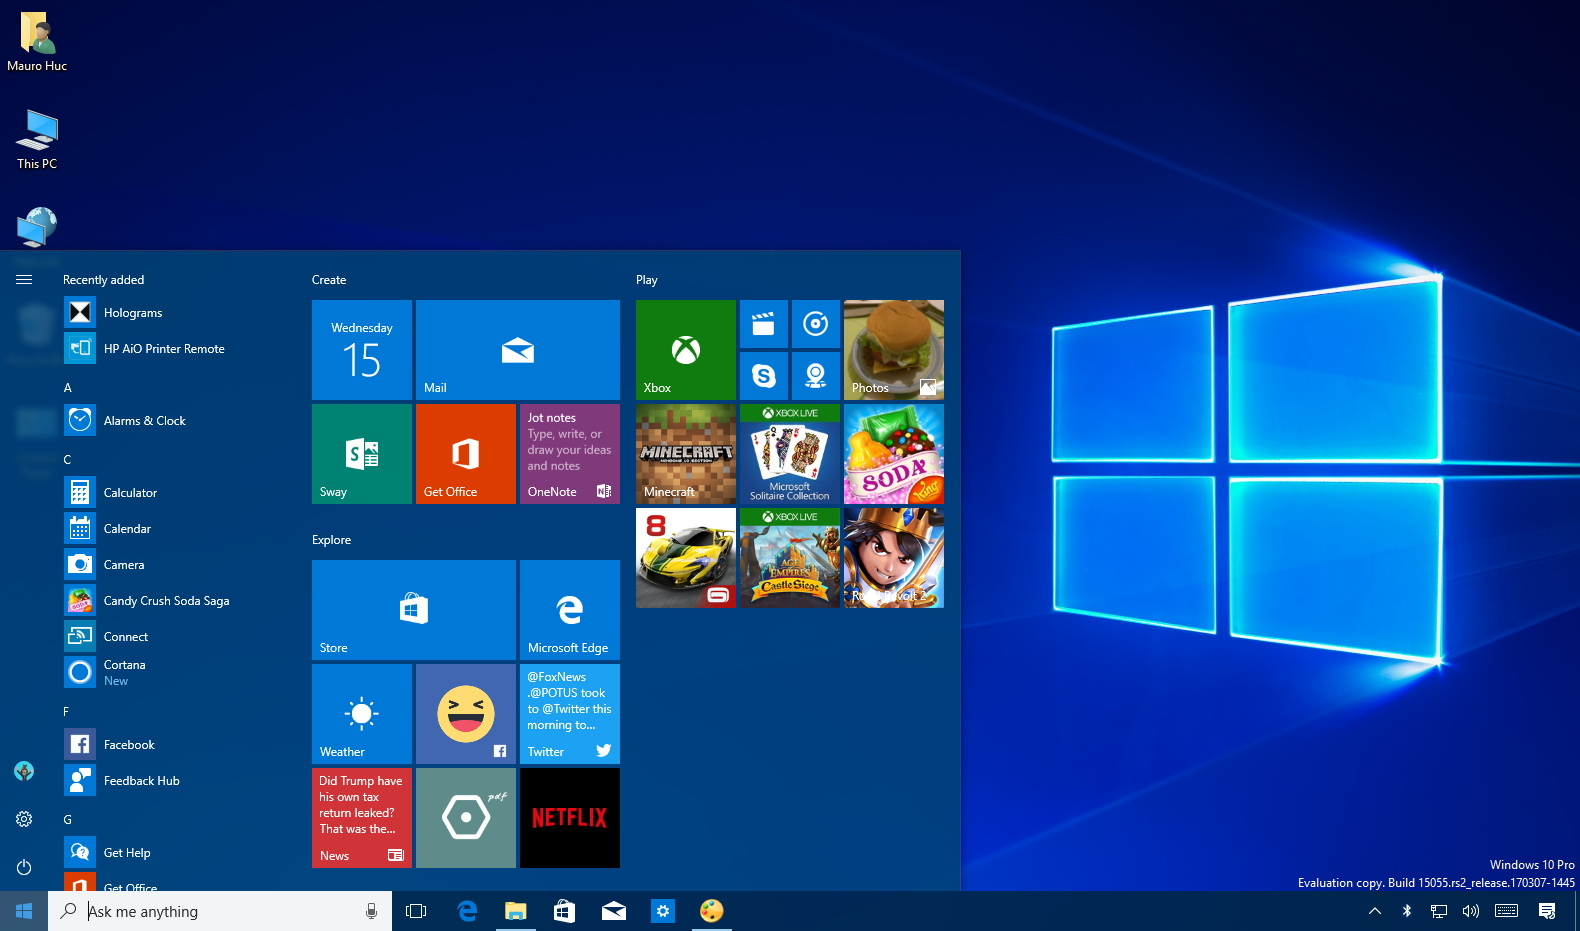 Features removed on Windows 10 Creators Update